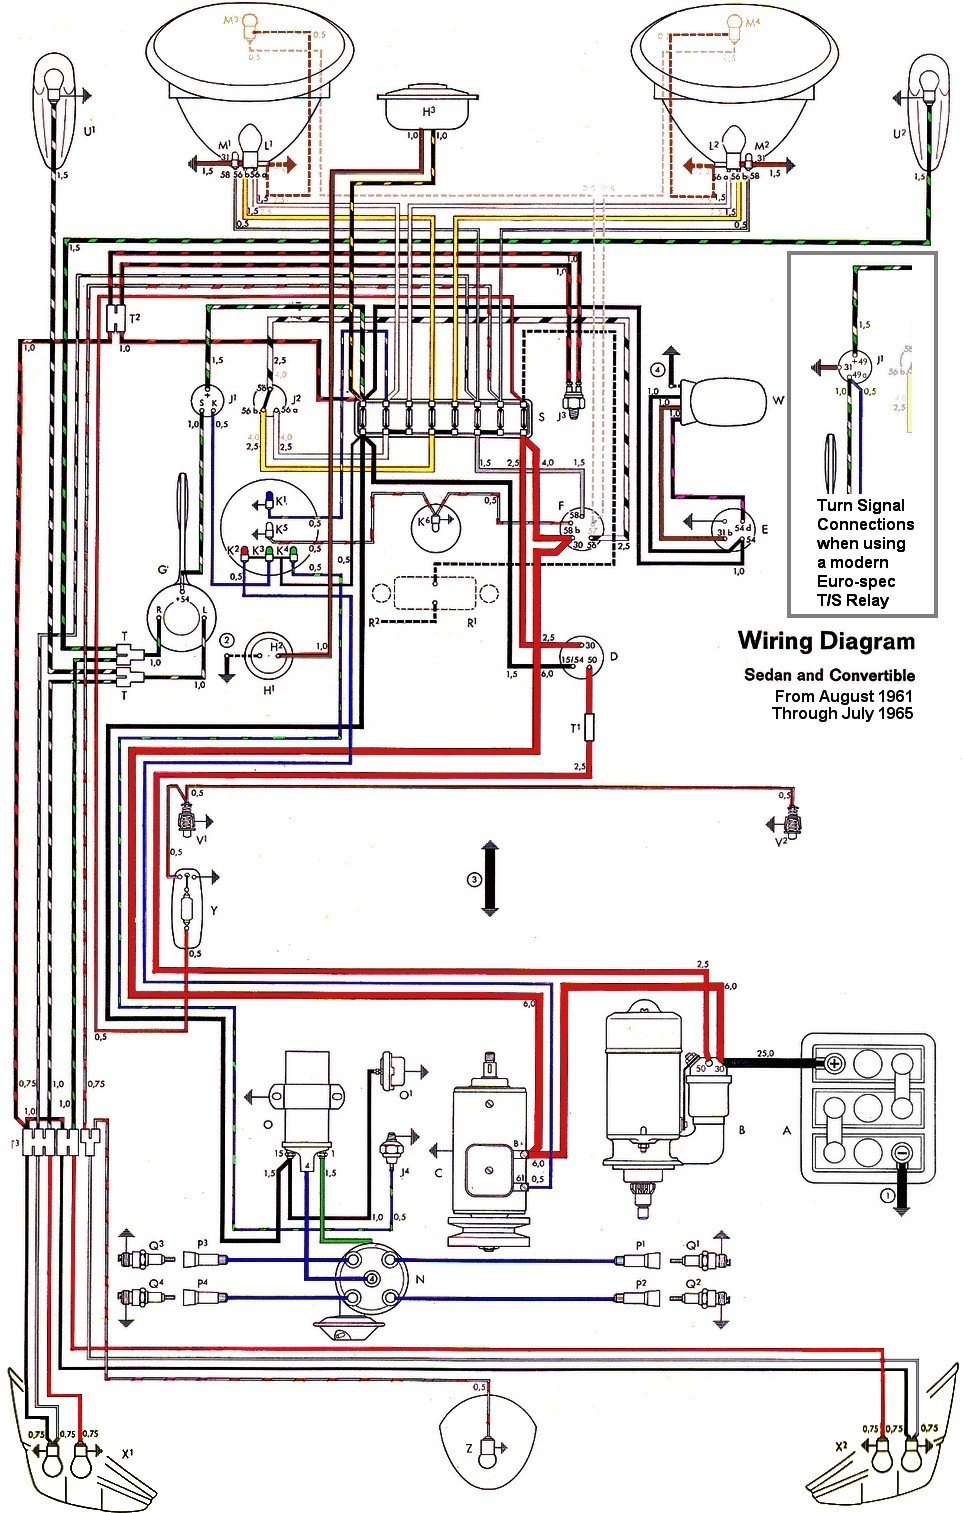 bug_62 65withinset vw wiring harness diagram cj7 wiring harness diagram \u2022 wiring Wiring Harness Diagram at sewacar.co